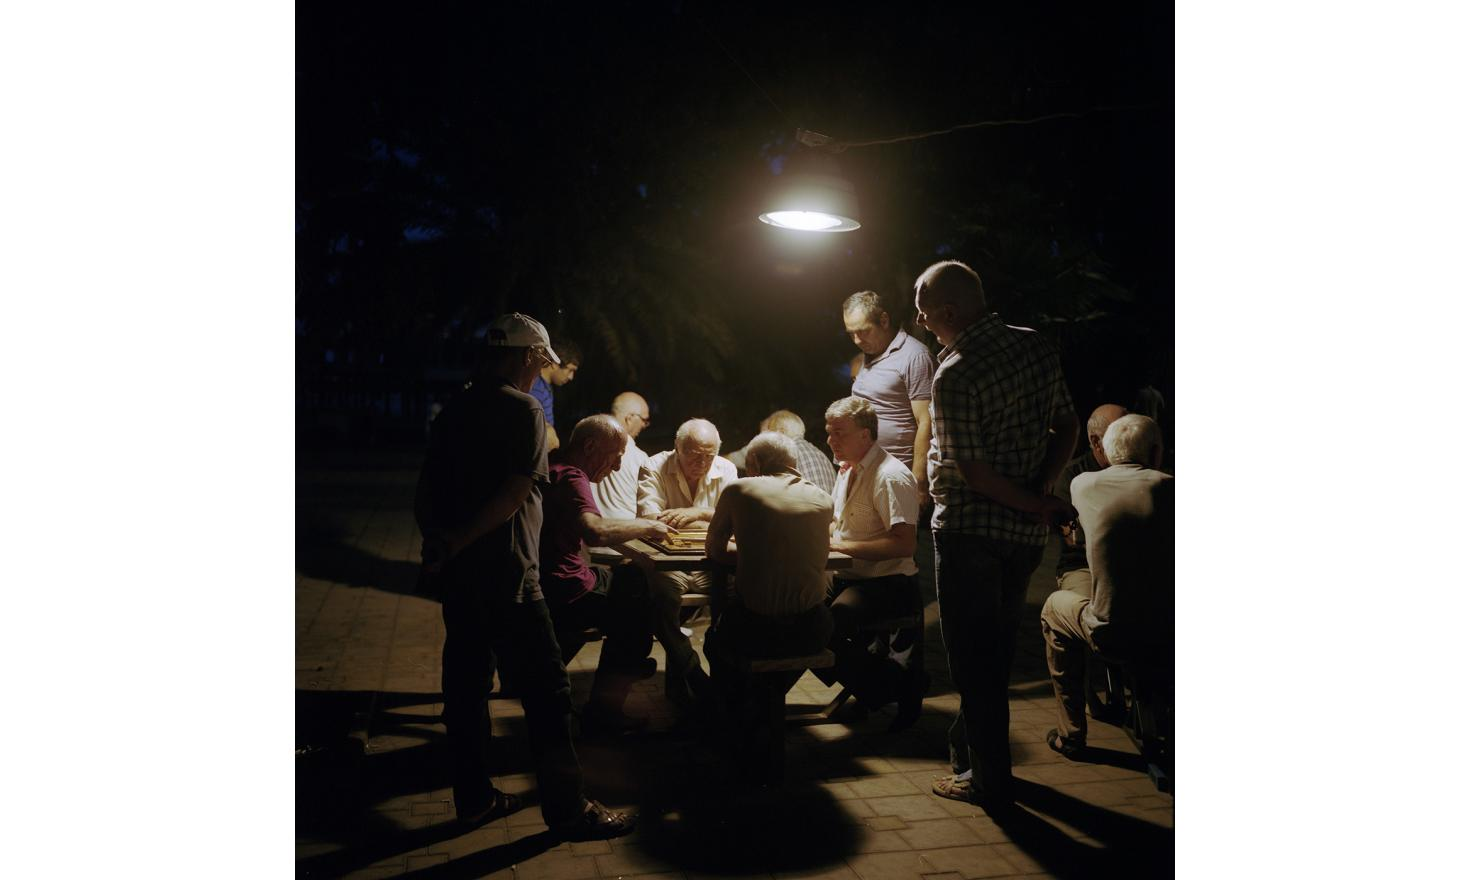 Evening in Sukhum(i). Men meet and play draughts, chess and backgammon in this little square.